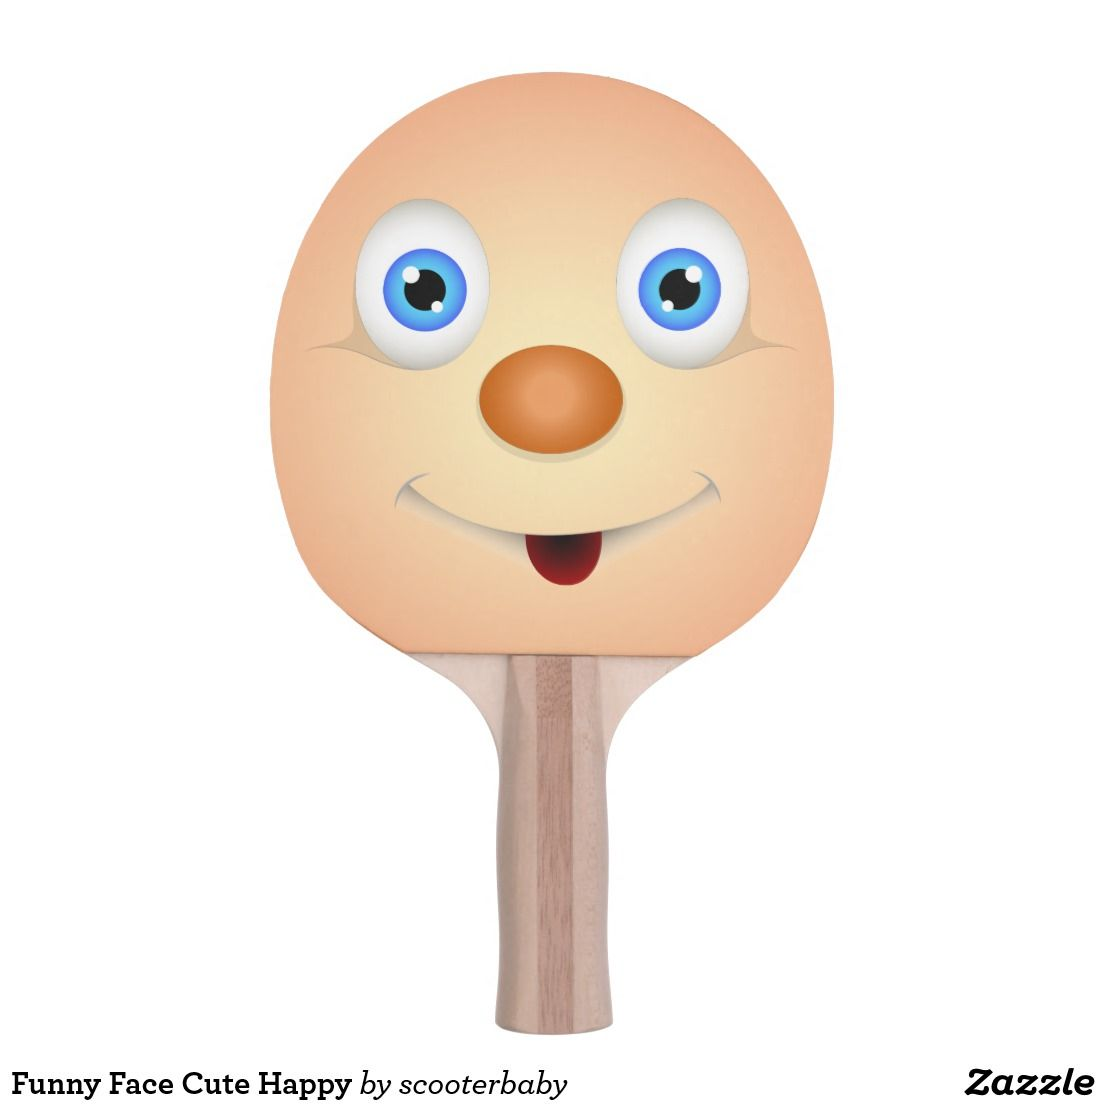 Funny Face Cute Happy Ping Pong Paddle Ping Pong Ping Pong Paddles Ping Pong Table Tennis